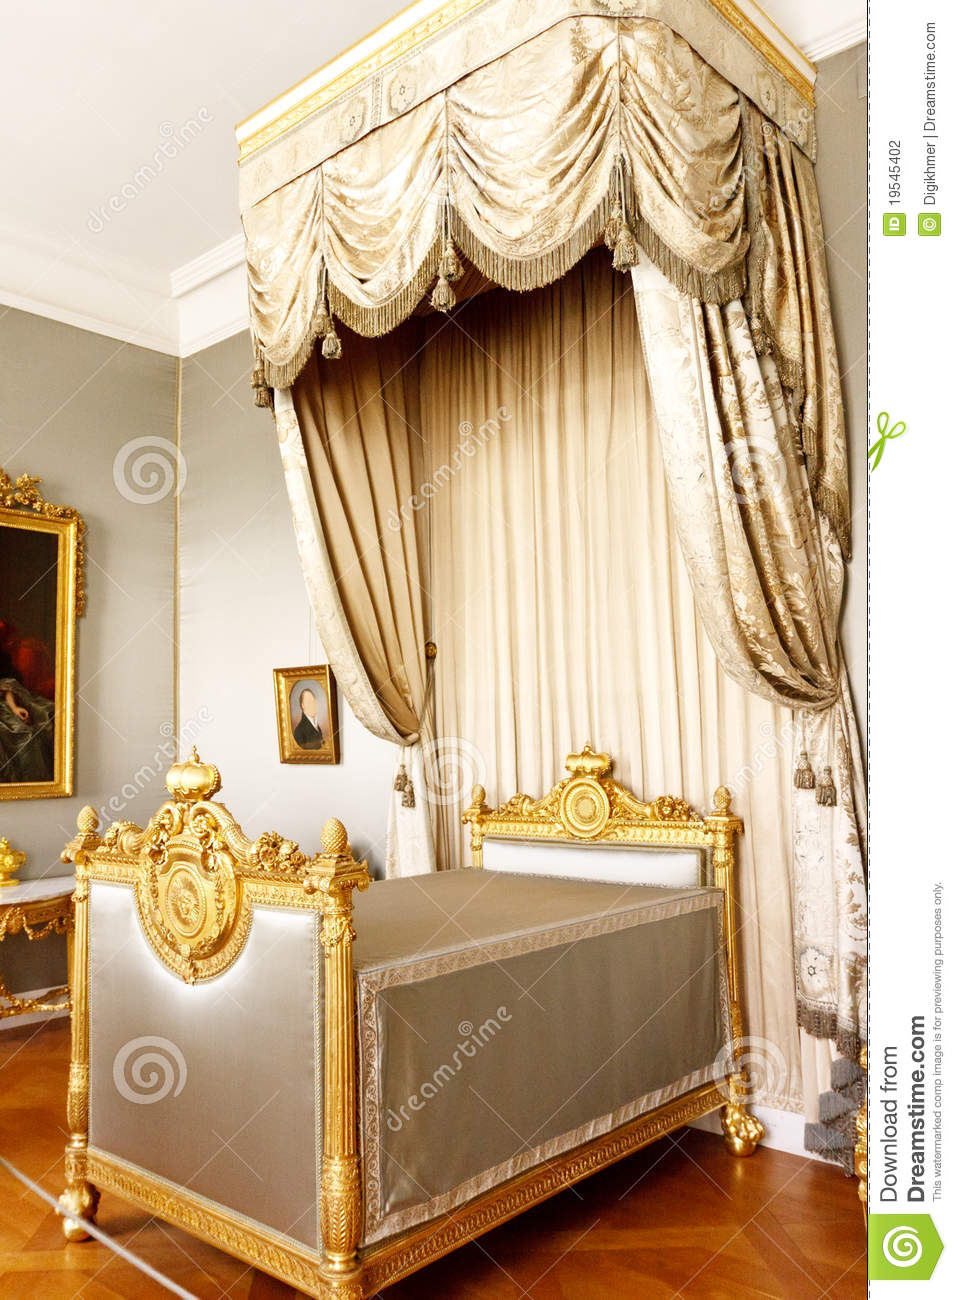 Bedroom With Royal Canopy Bed Stock Photography  Image 19545402